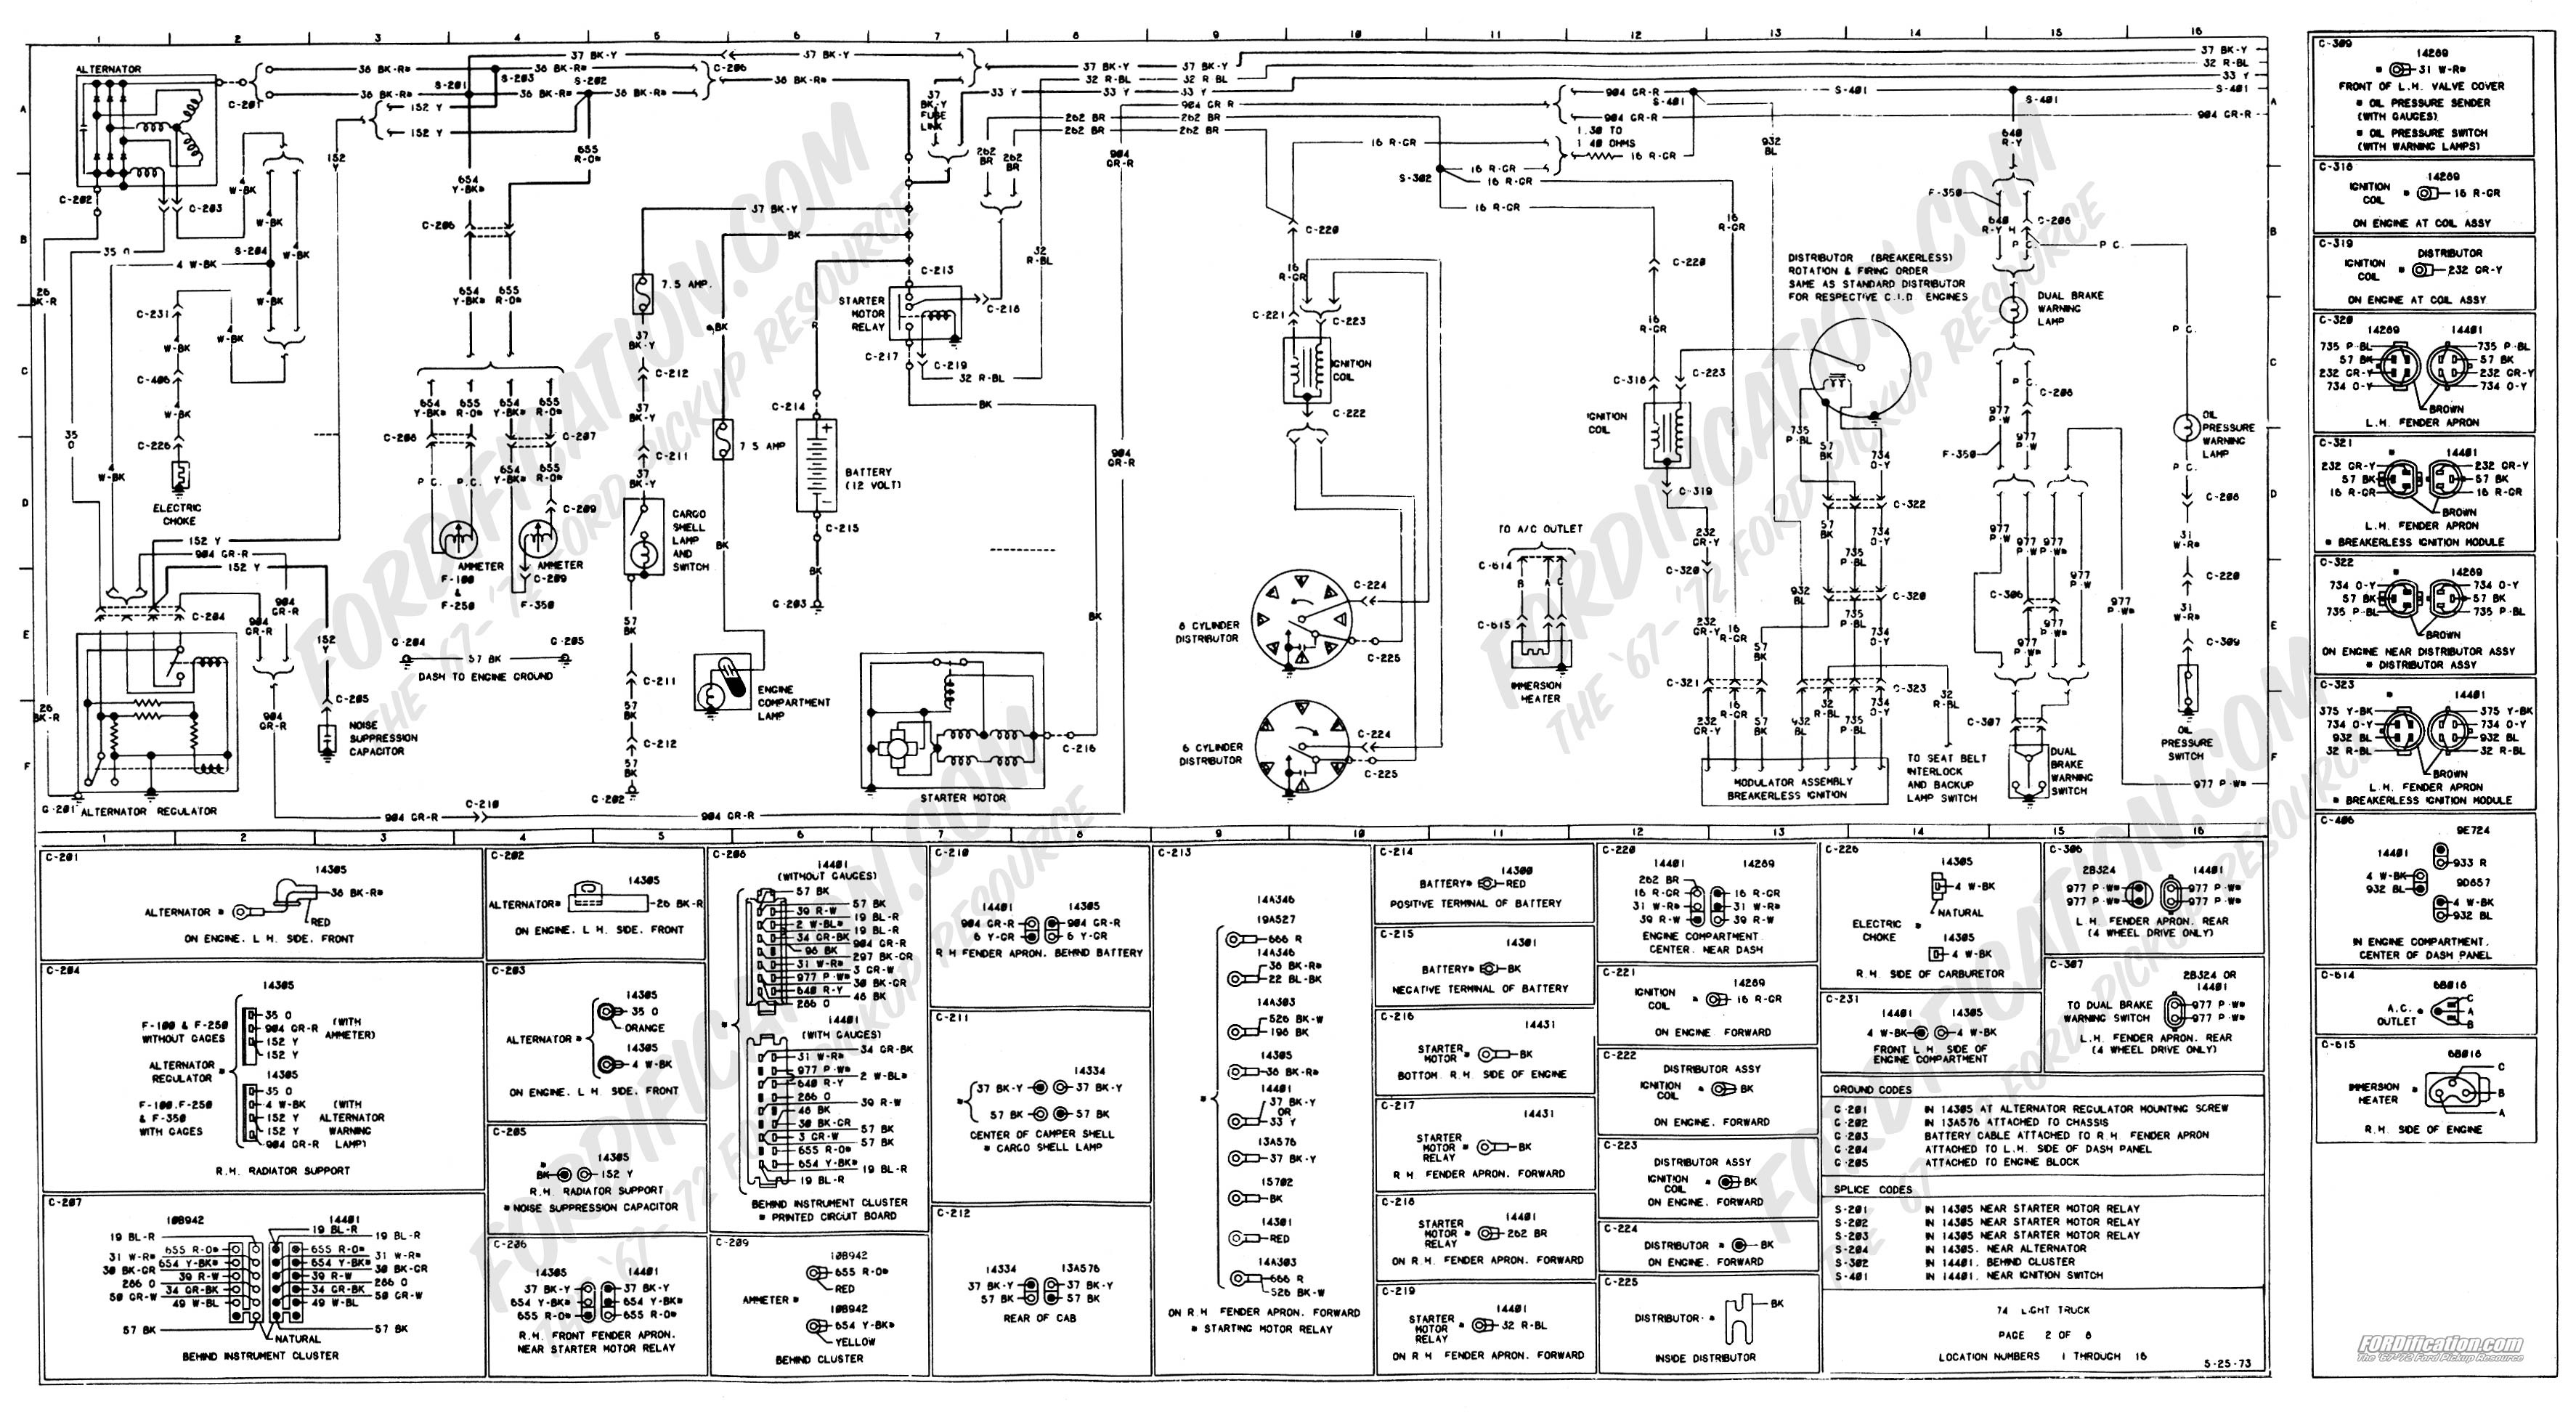 sterling fuse box auto electrical wiring diagram rh wiring digitaltags co sterling fuse box diagram sterling fuse box connectors